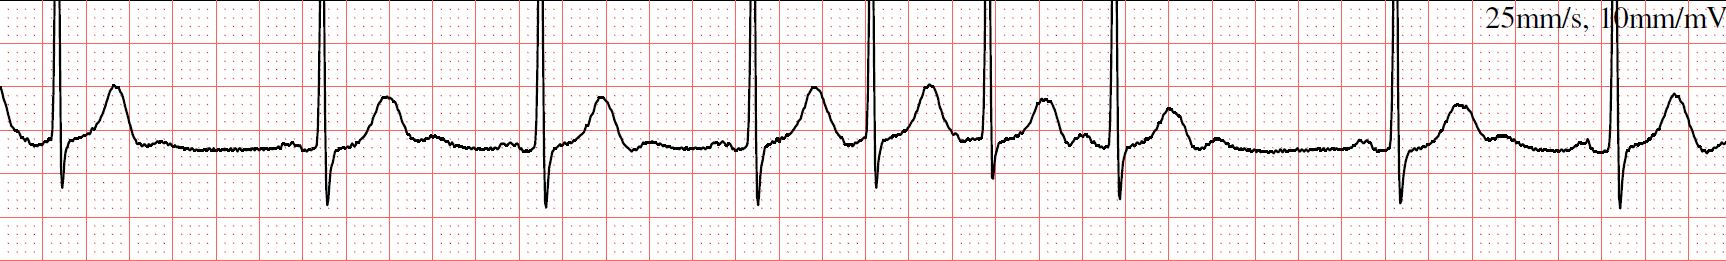 Ectopic Heart Rhythm